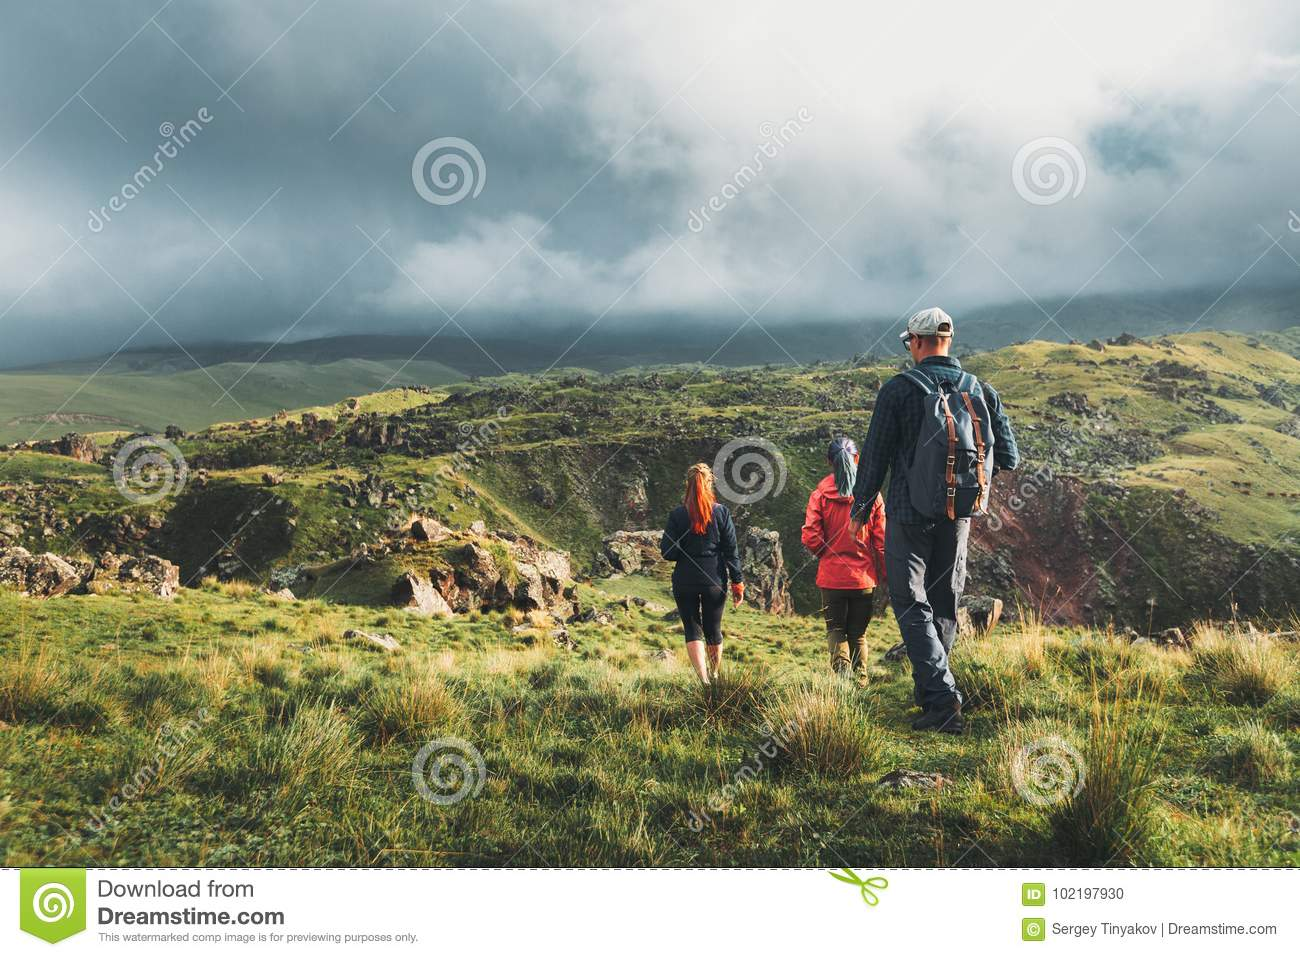 Group Of Hikers Walking Along The Green Hills, Rear View. Travel Tourism Discovery Concept